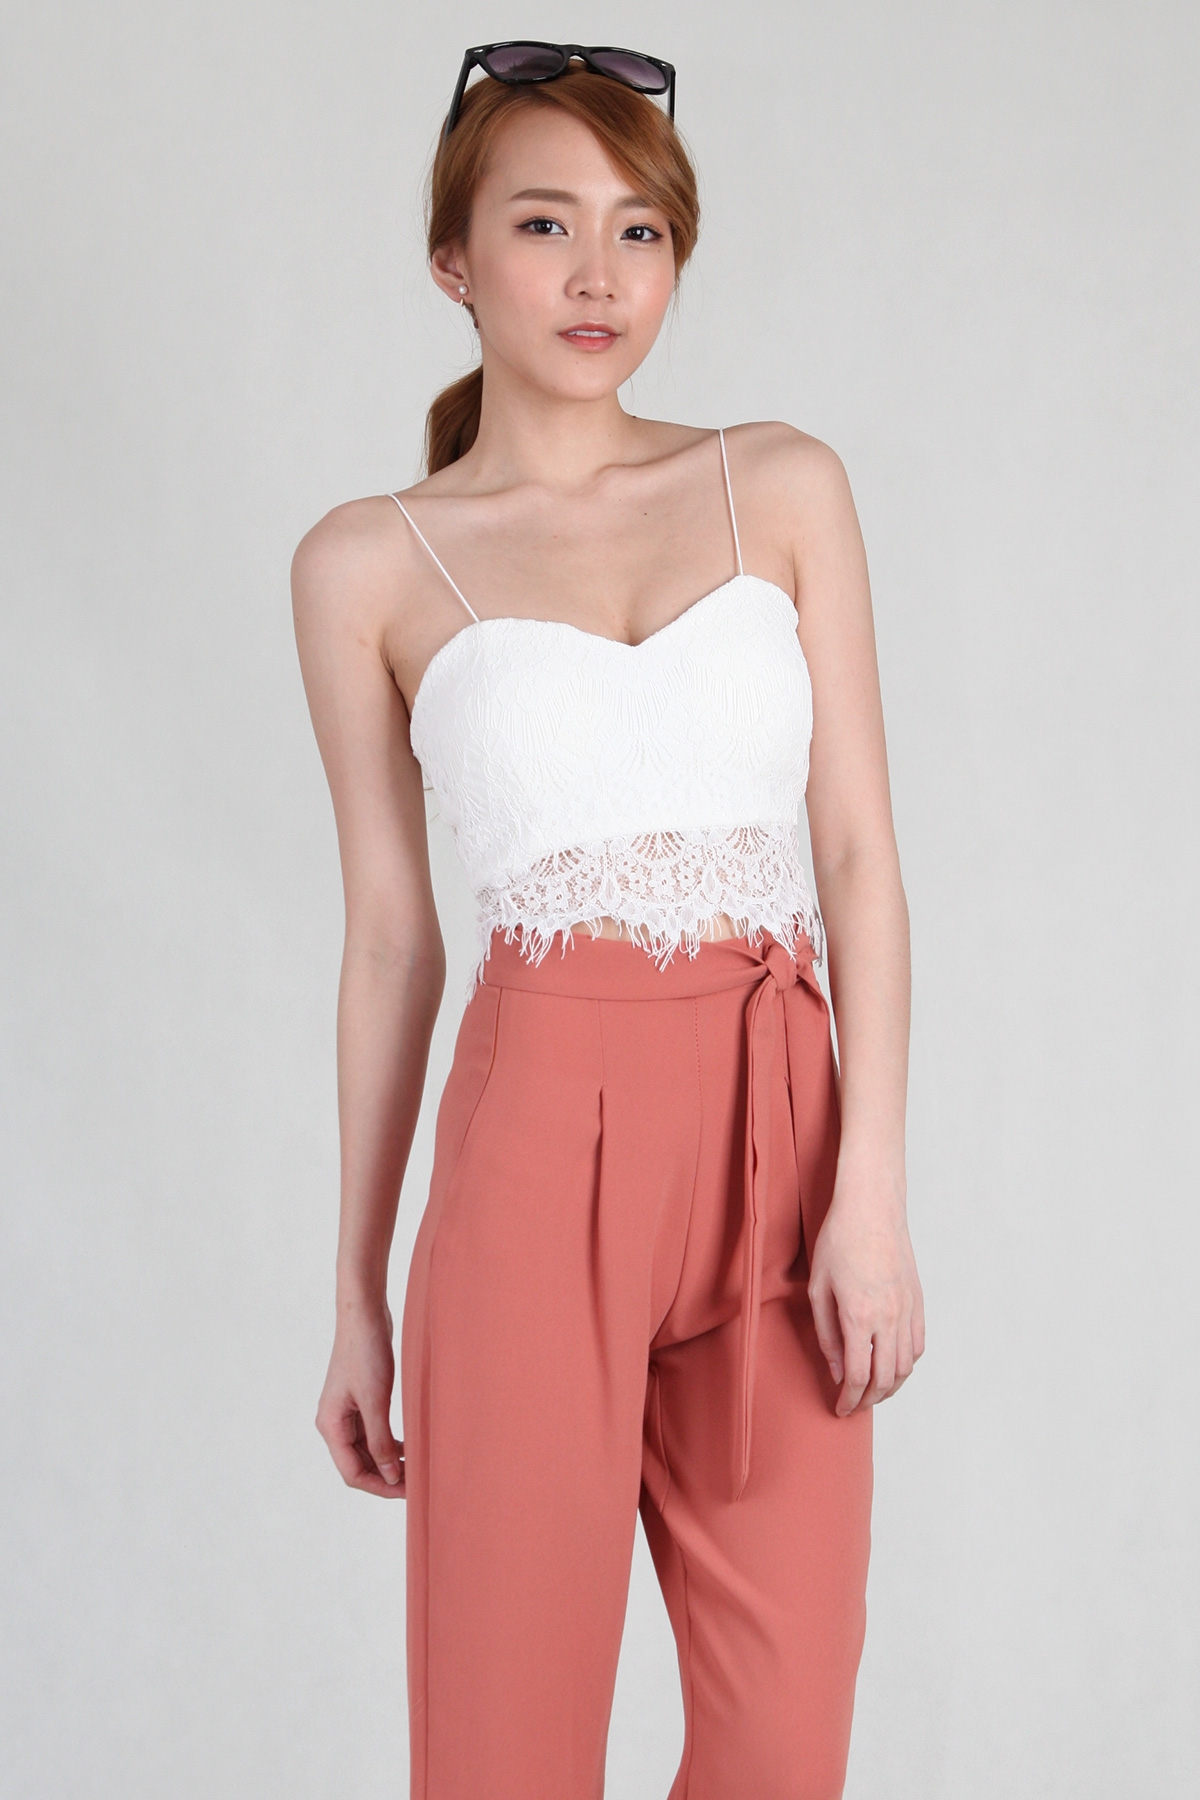 Shoestring Lace Crop Bralet in White